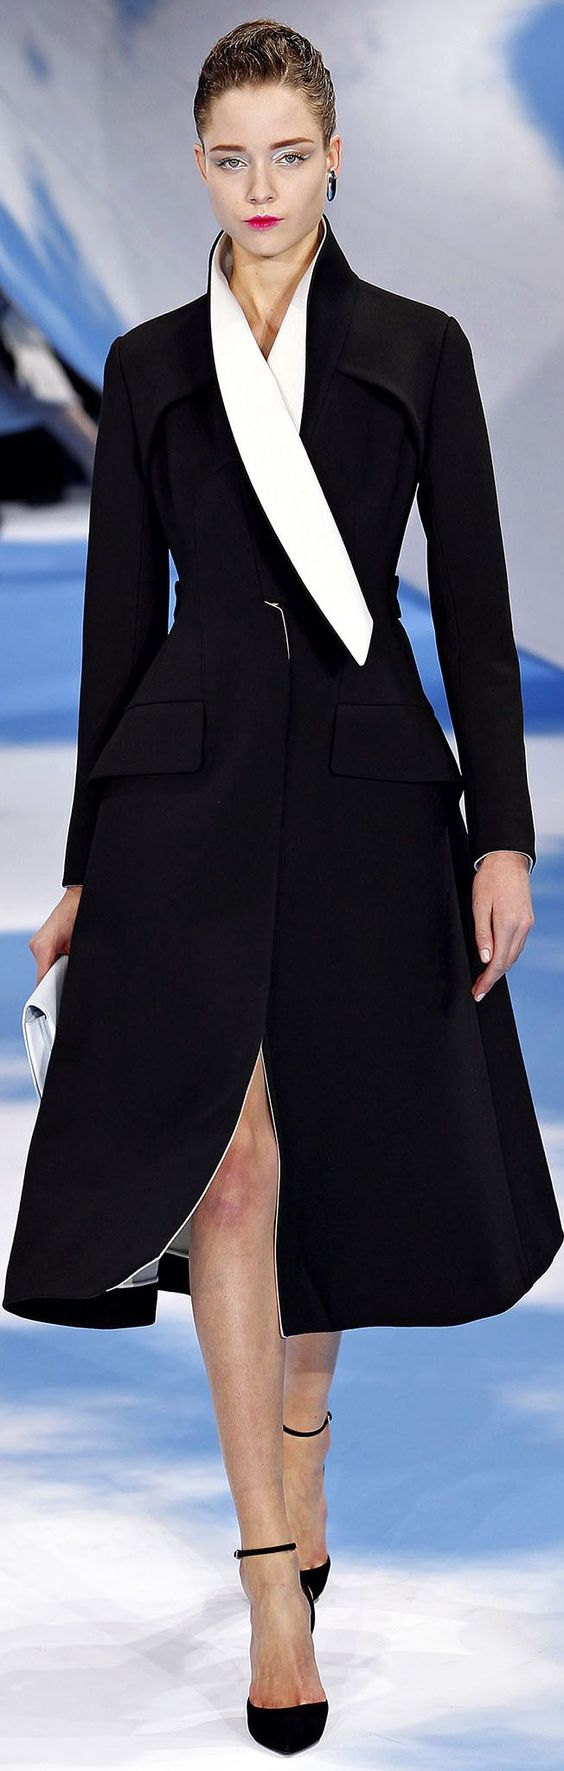 Christian Dior (via Patricia Salençon) Fall 2013 RTW (confirmed via style.com):